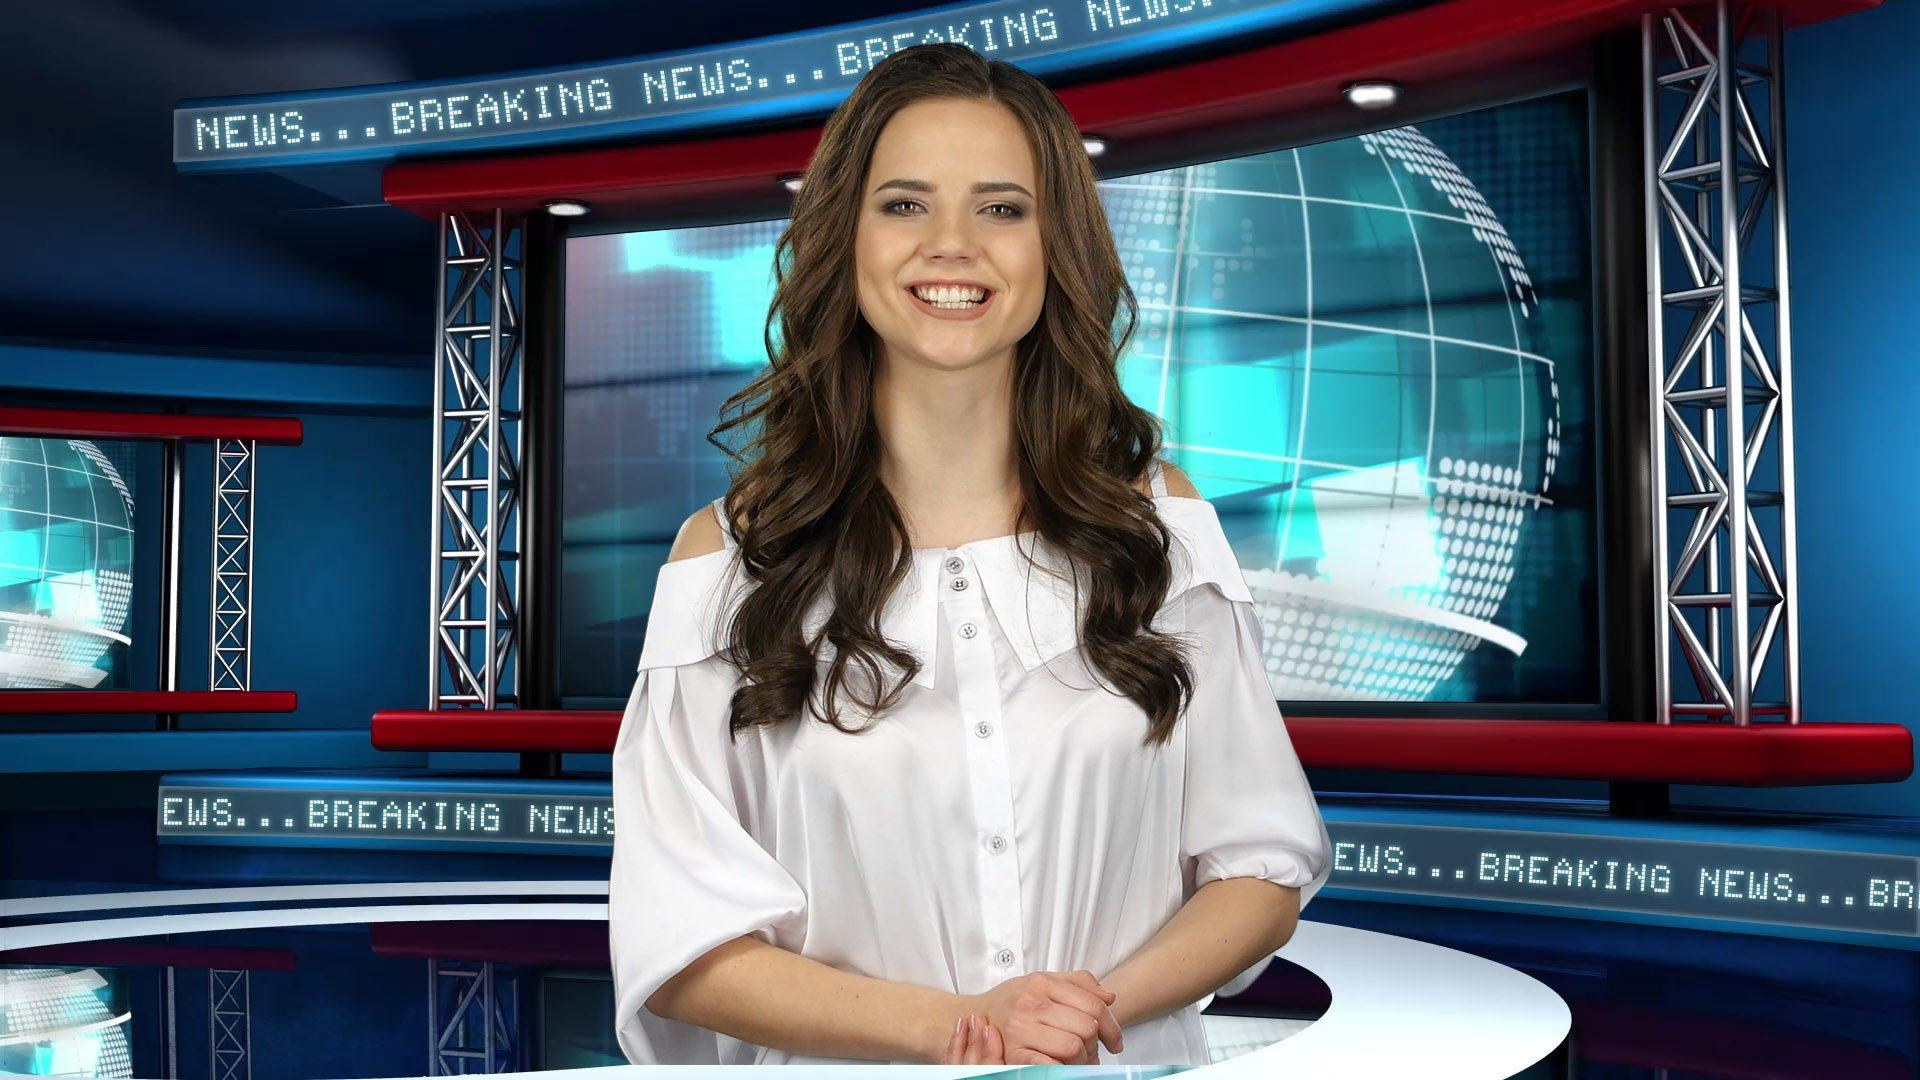 Global News Virtual Studio Set Free Demo [FREE DEMO]